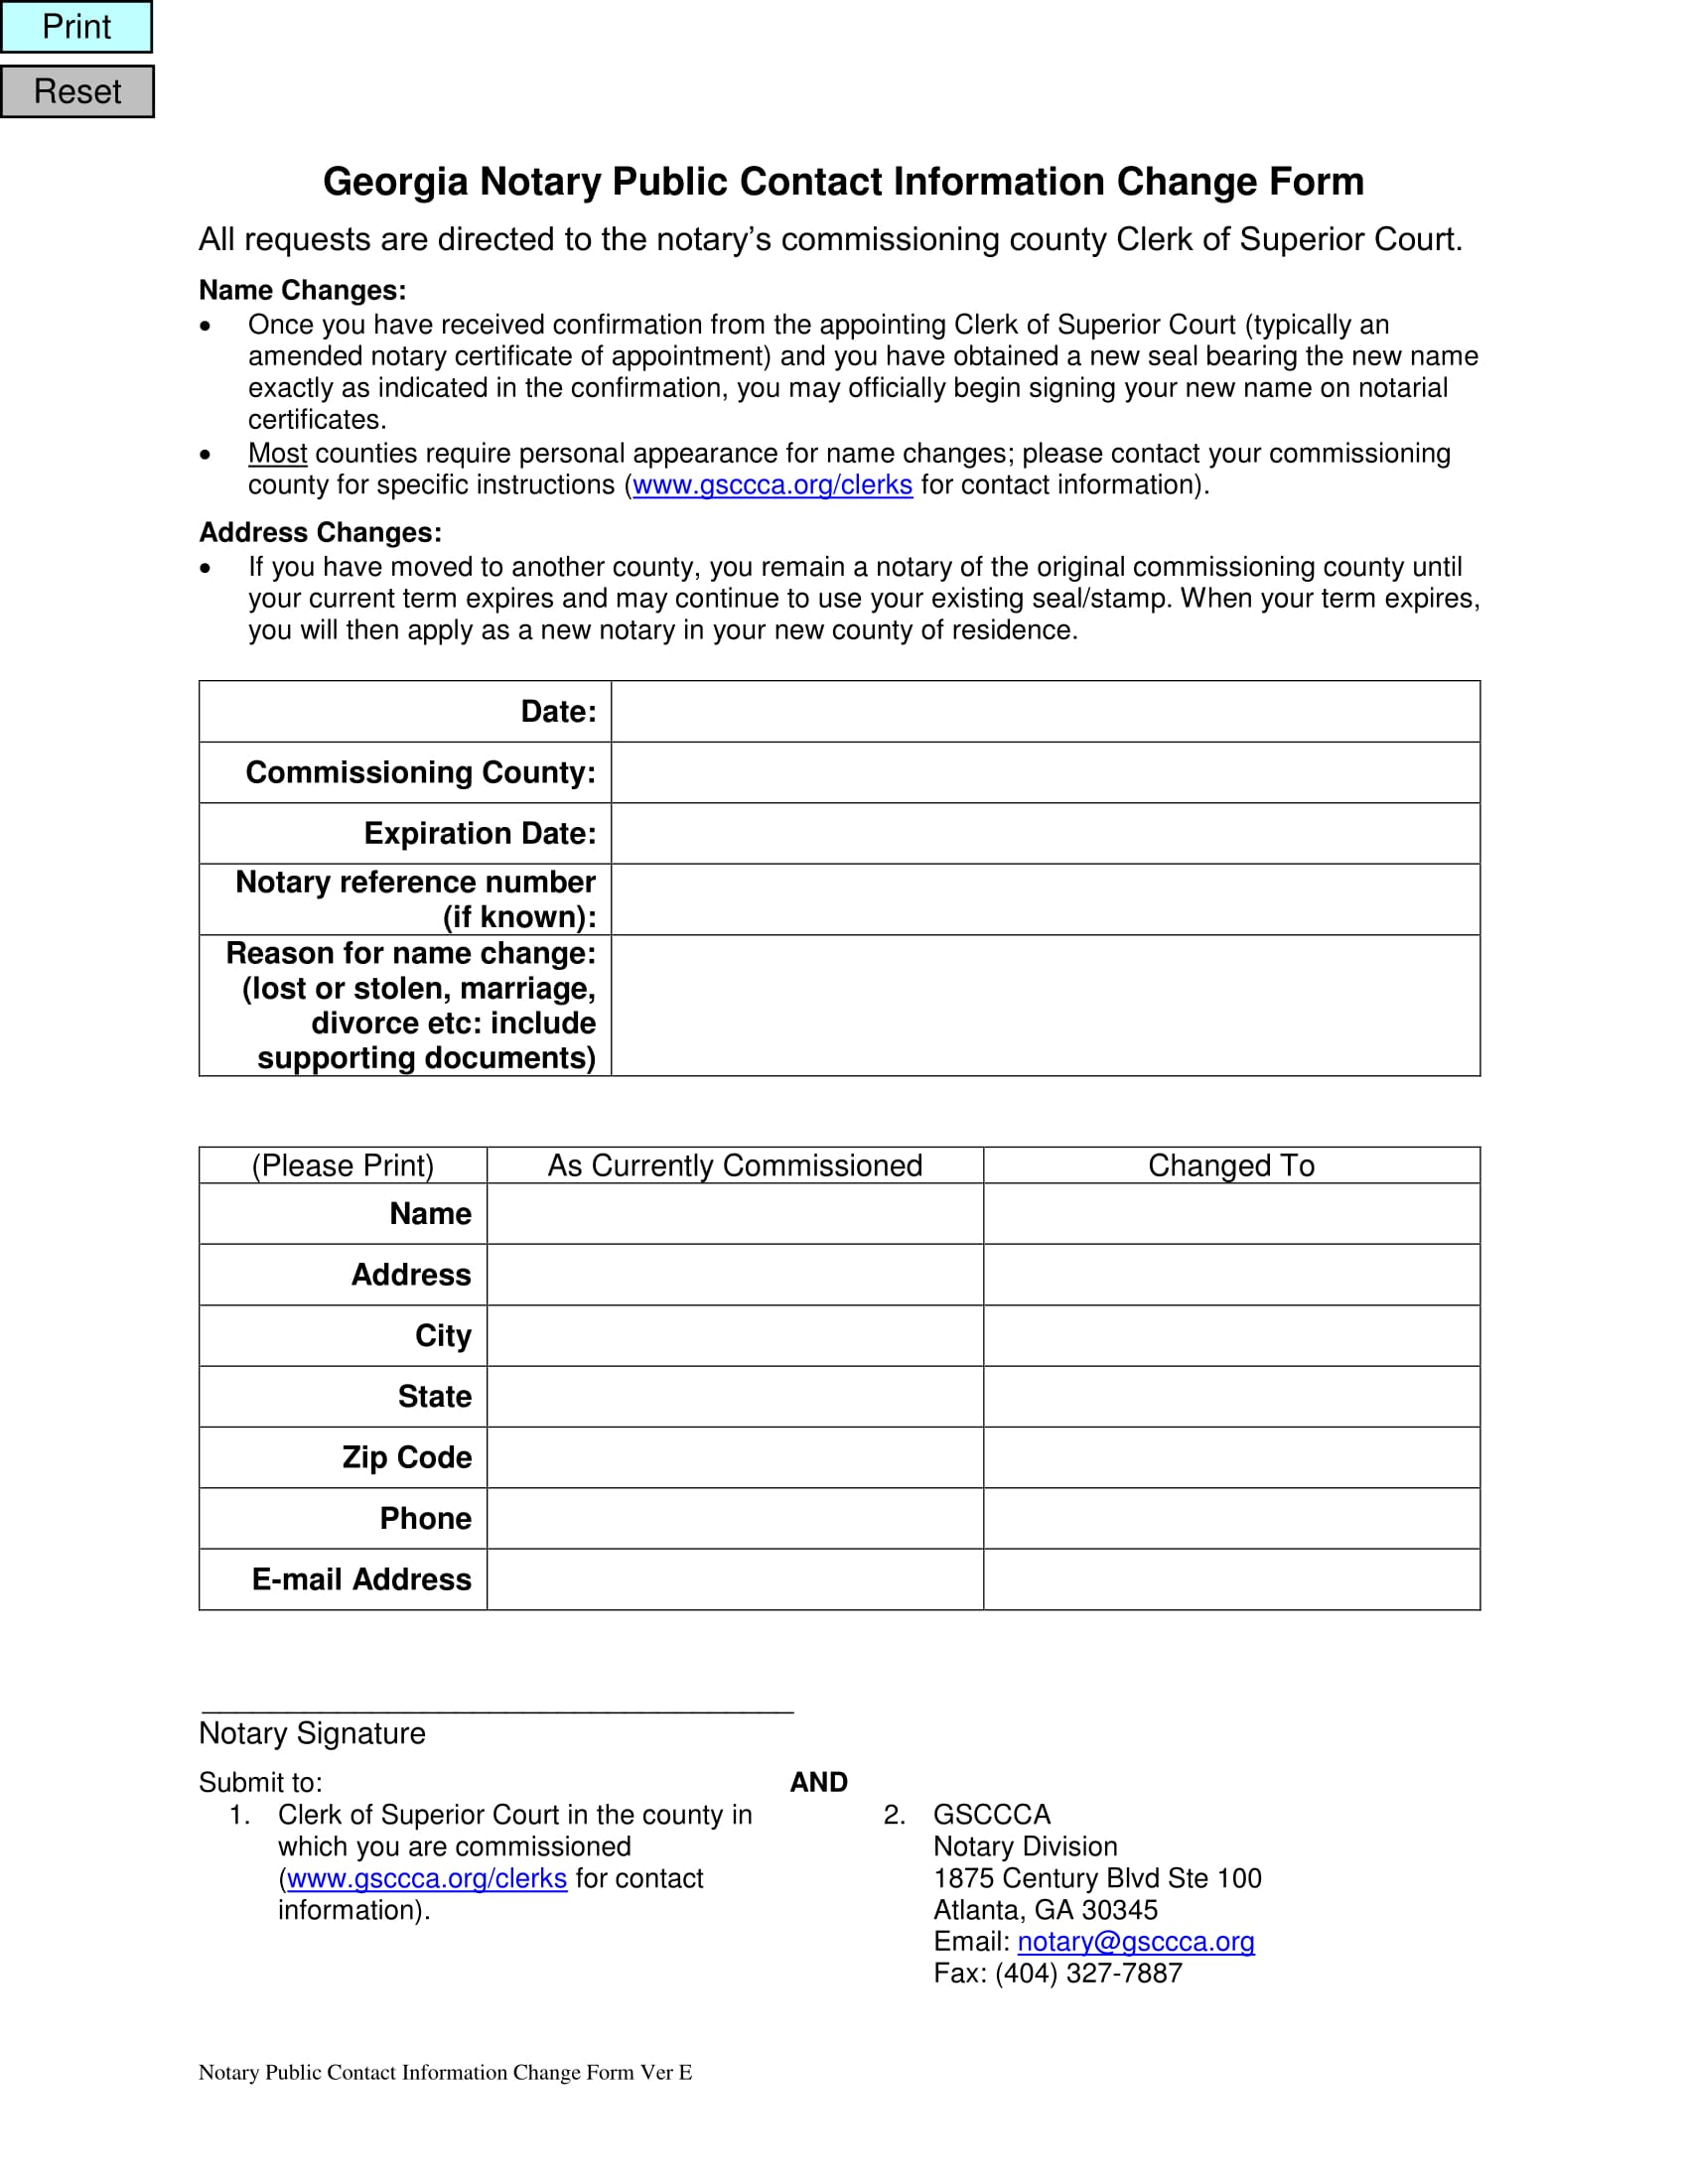 notary change verification form 1